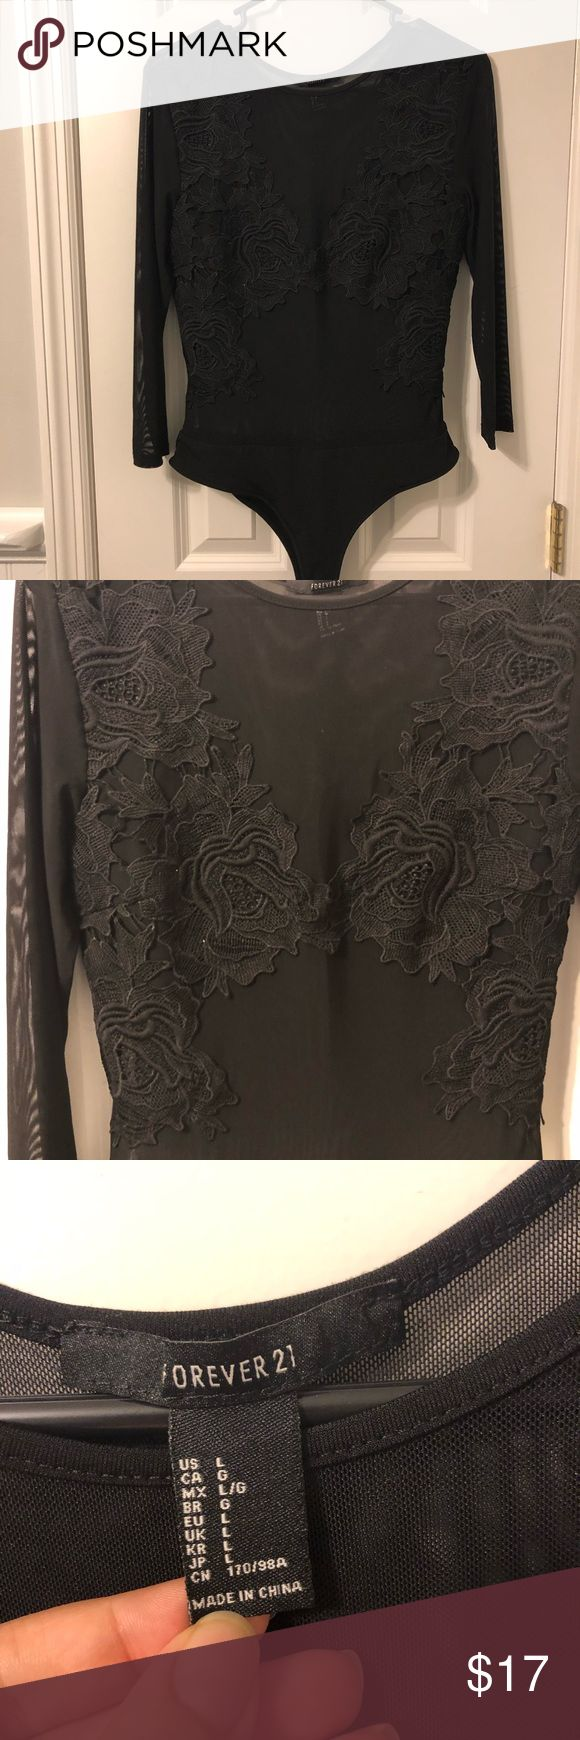 Lace bodysuit forever 21 Very sheer  Lace Great condition  Would be great for fe…